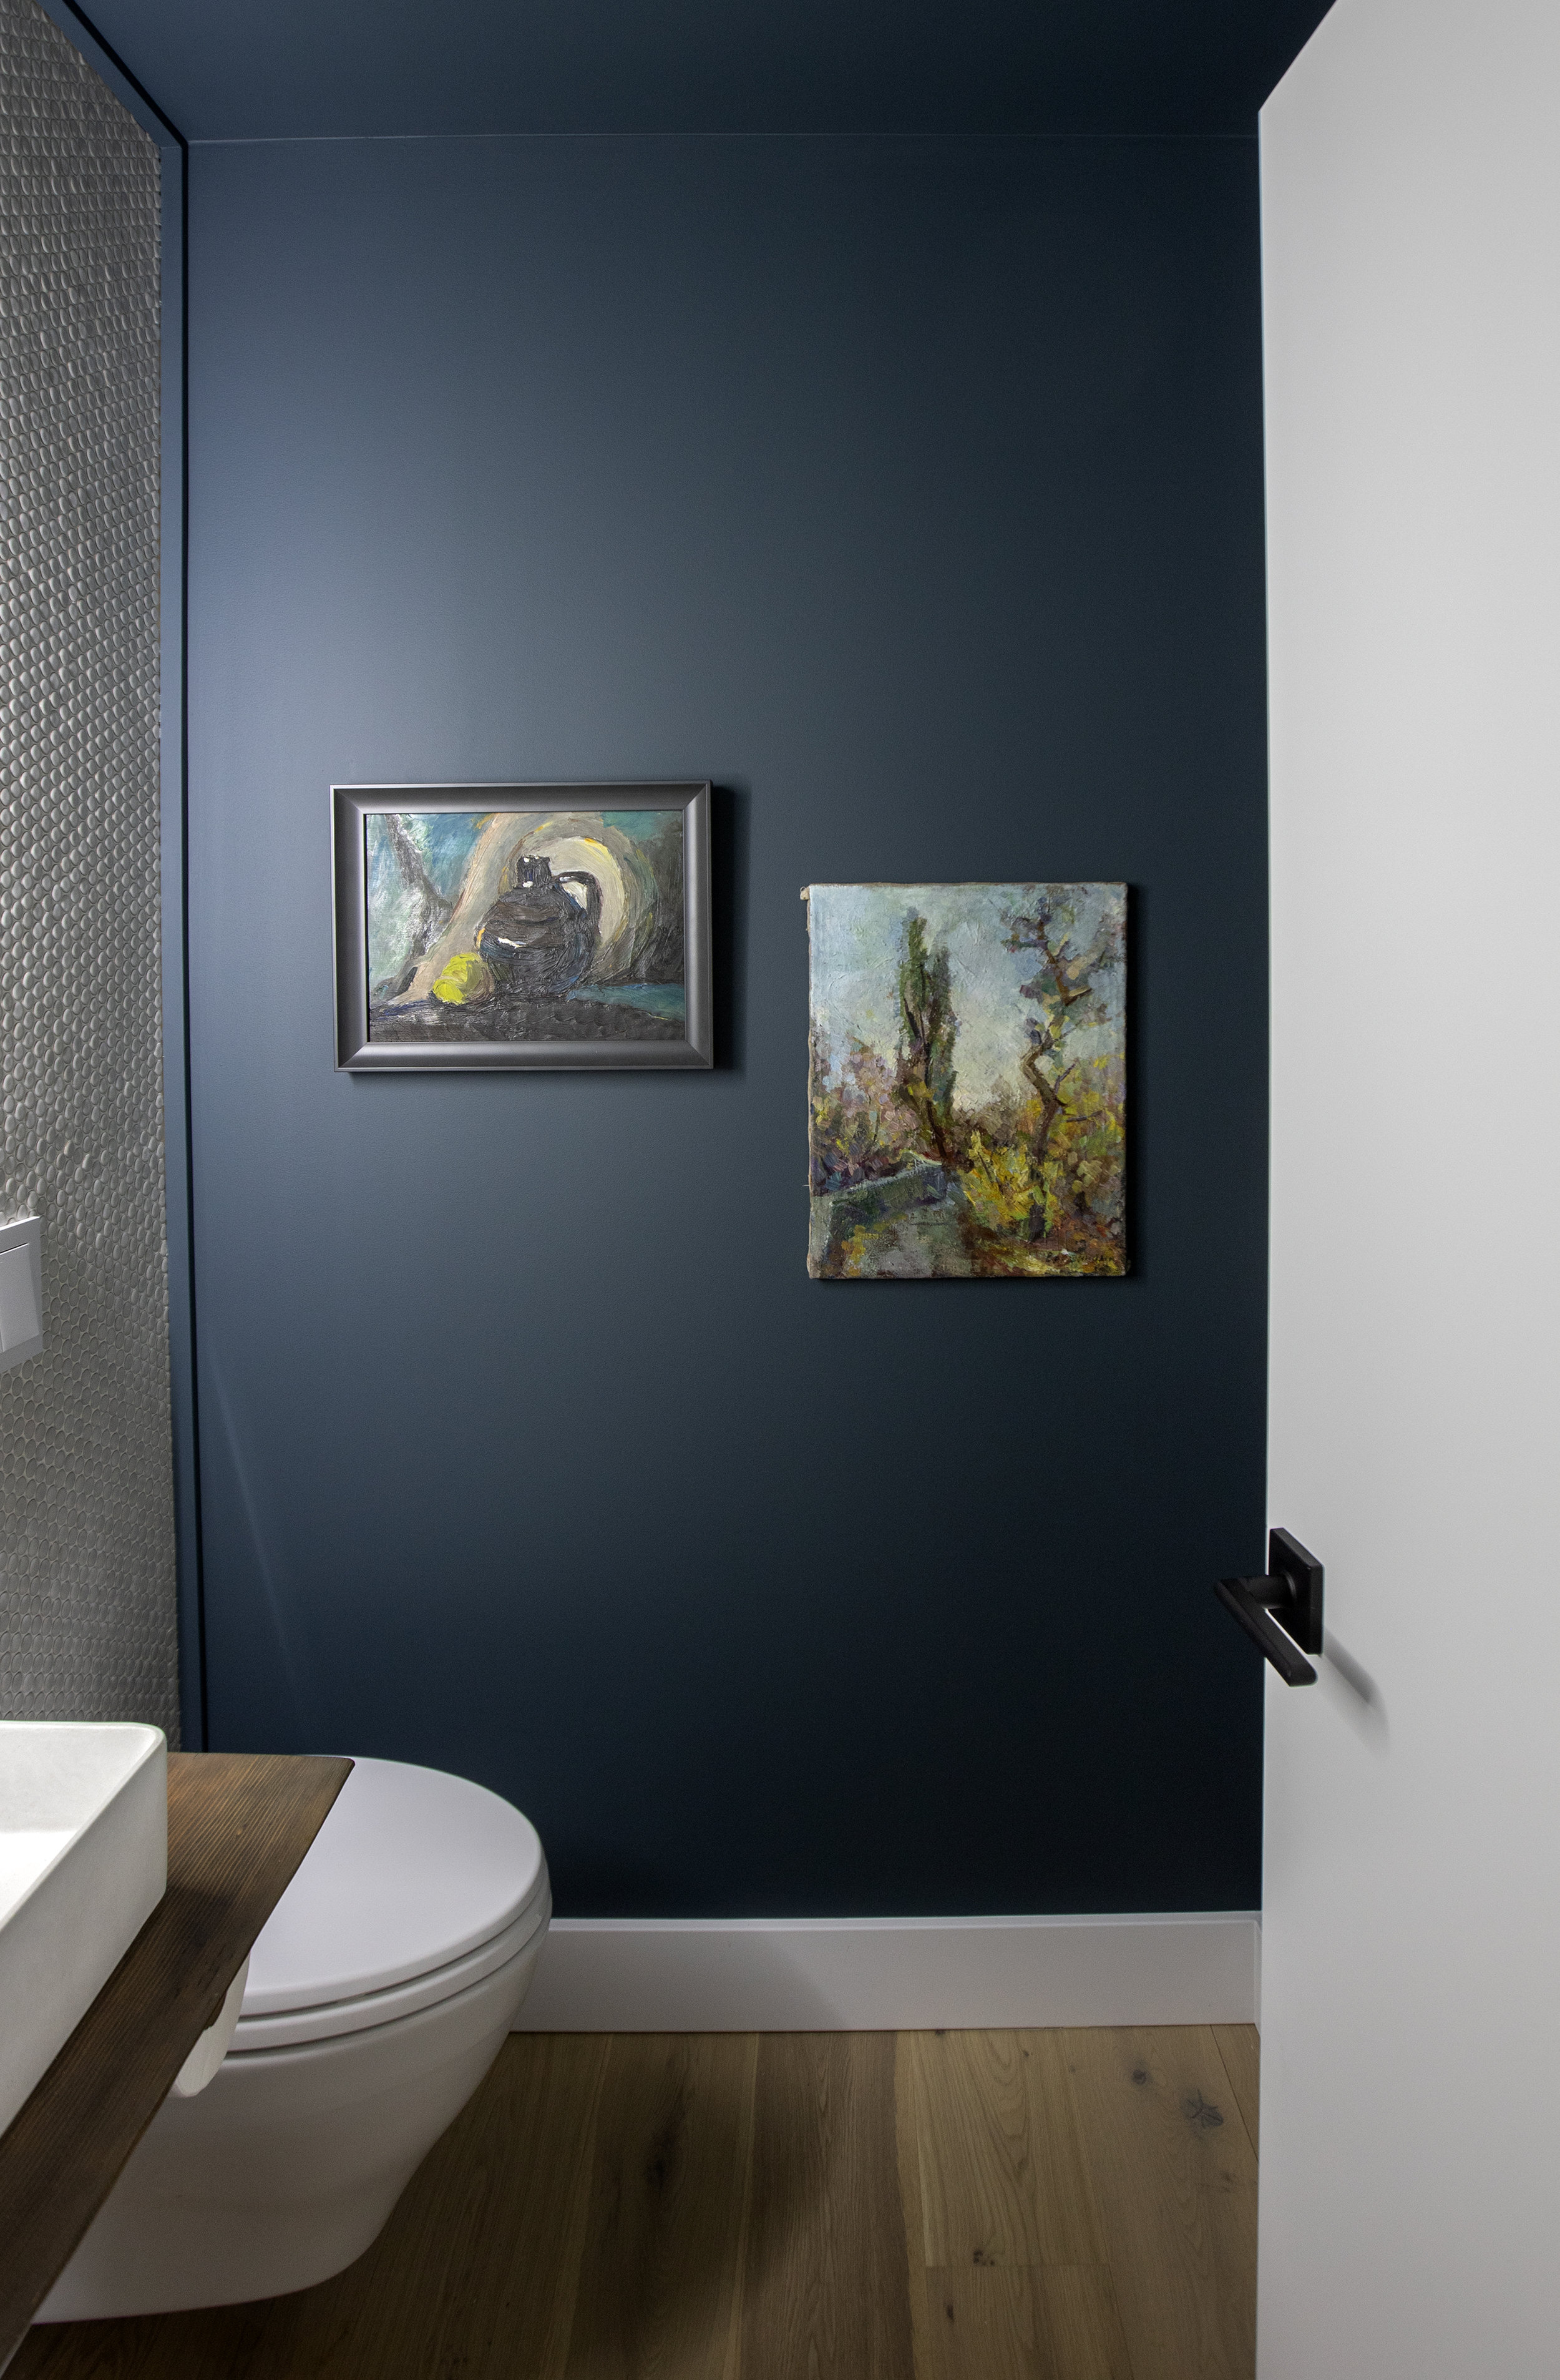 The bathroom at Alderfield place has a navy blue accent wall with two antique paintings resting above the toilet.